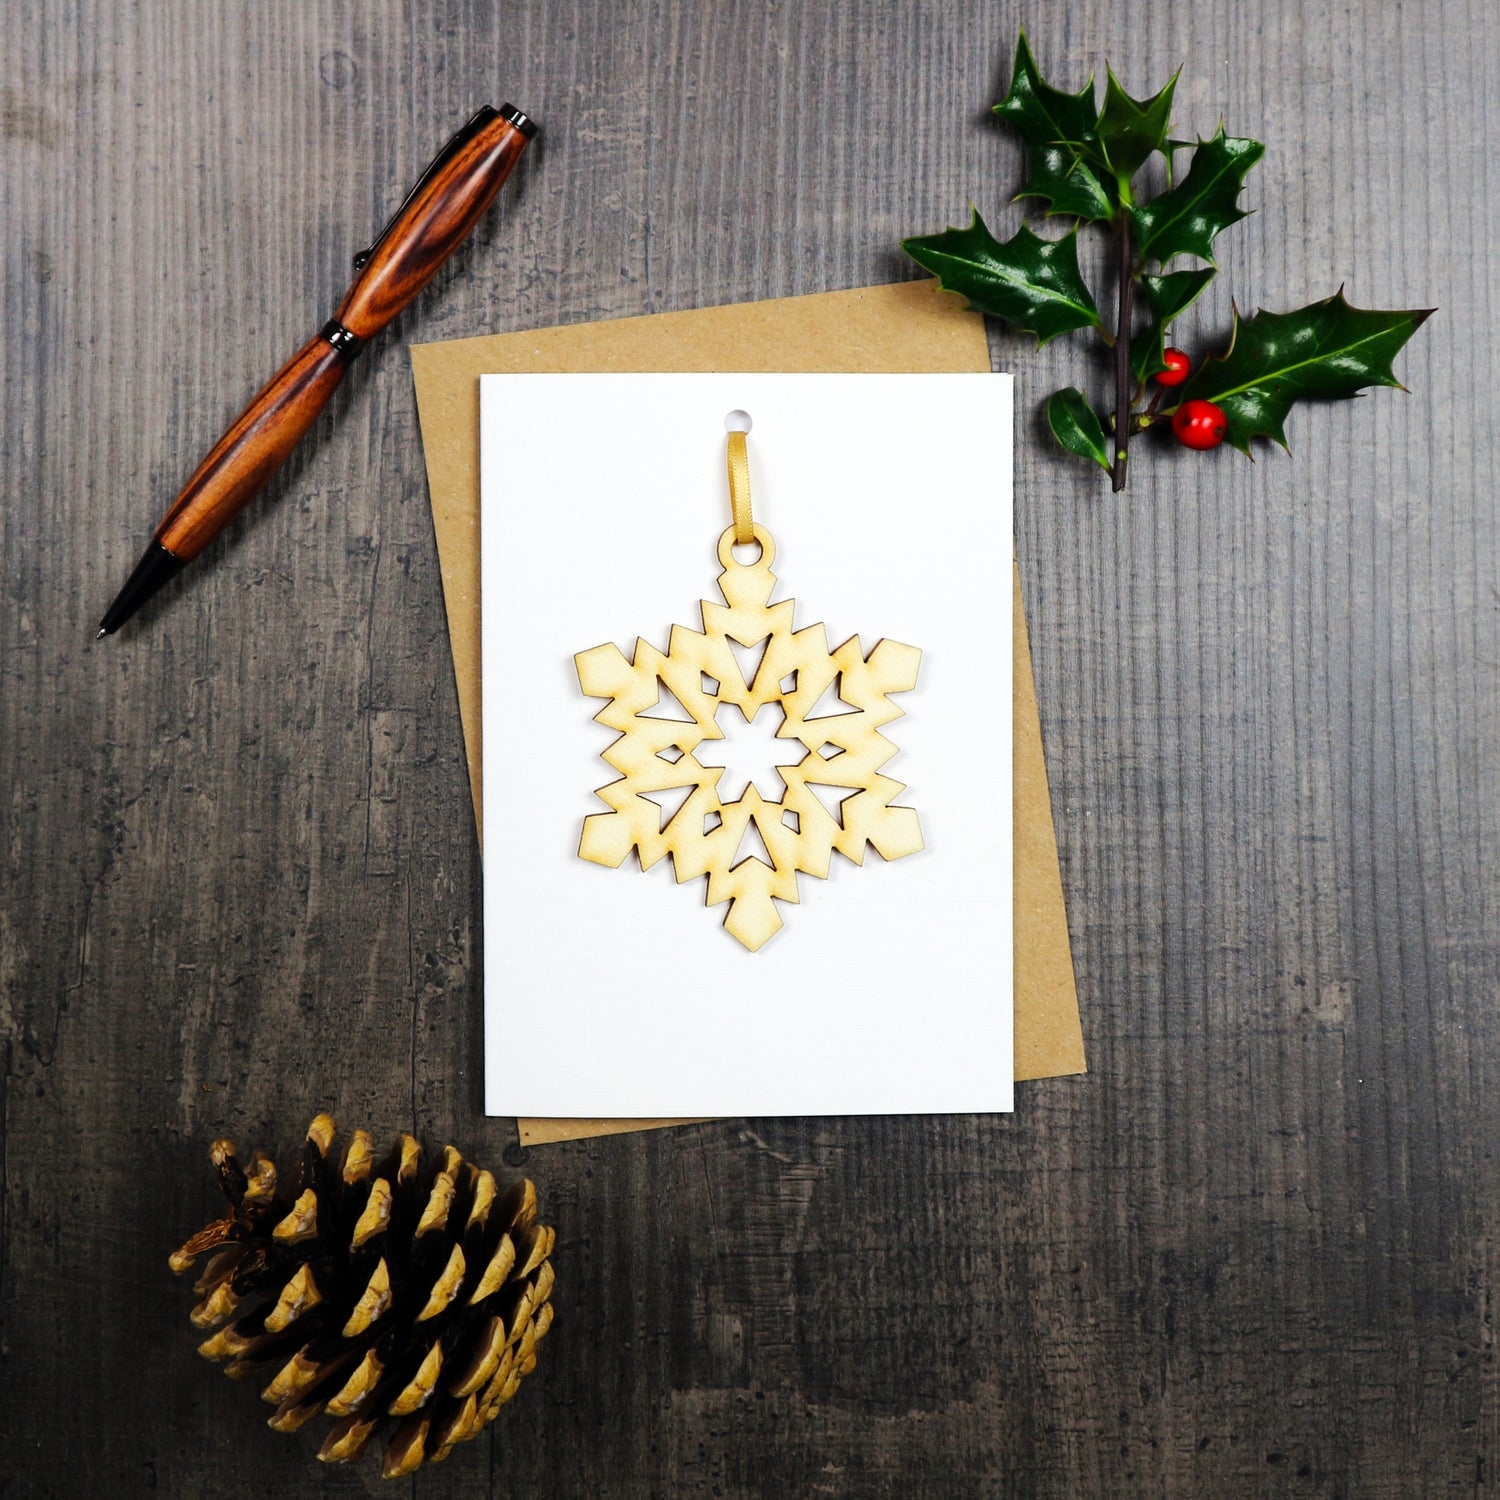 Image of Christmas Card with Woodcut Snowflake Decoration